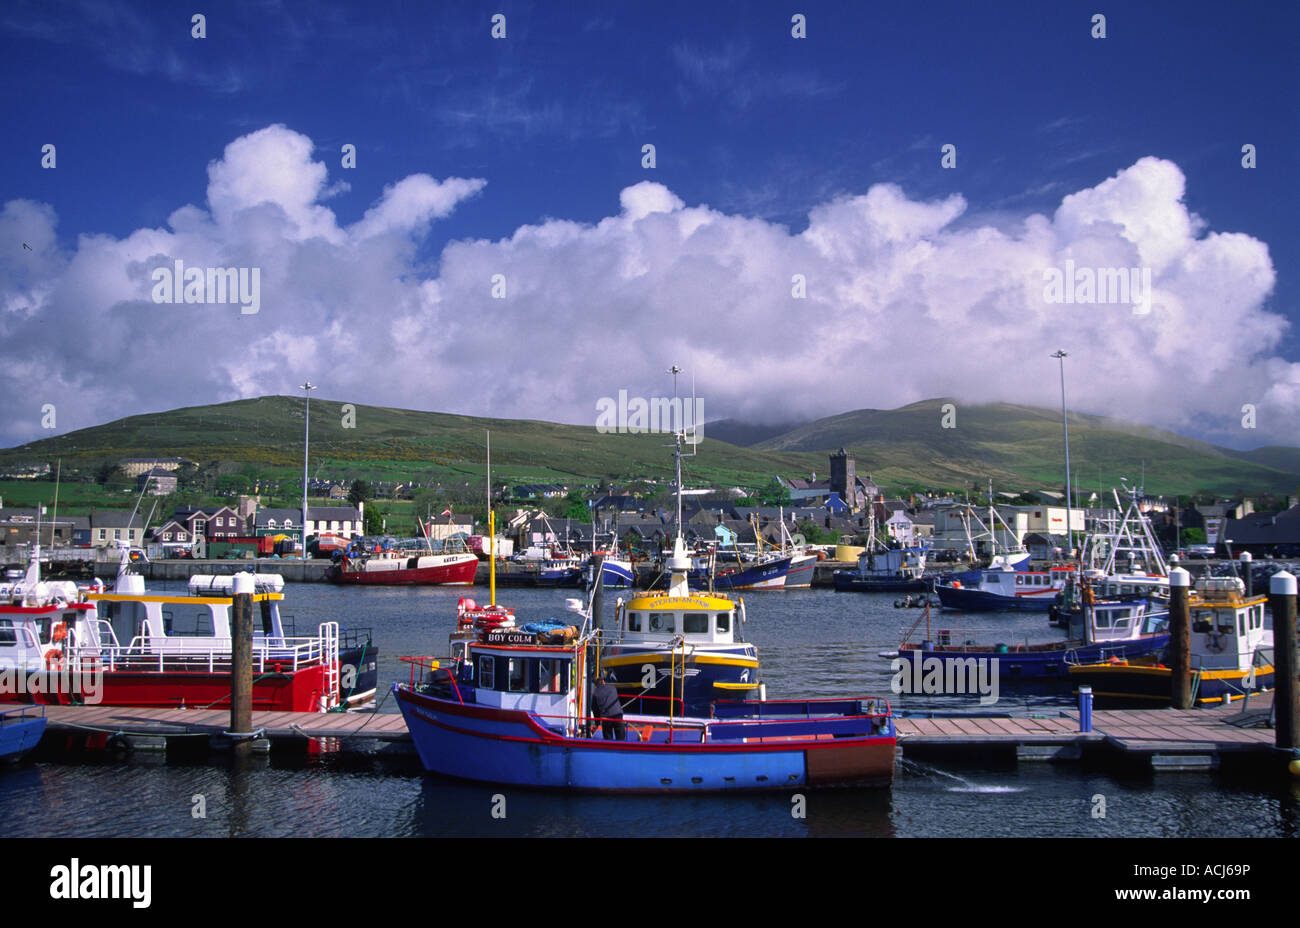 Fishing boats and trawlers moored in in Dingle Harbour. County Kerry, Ireland. - Stock Image